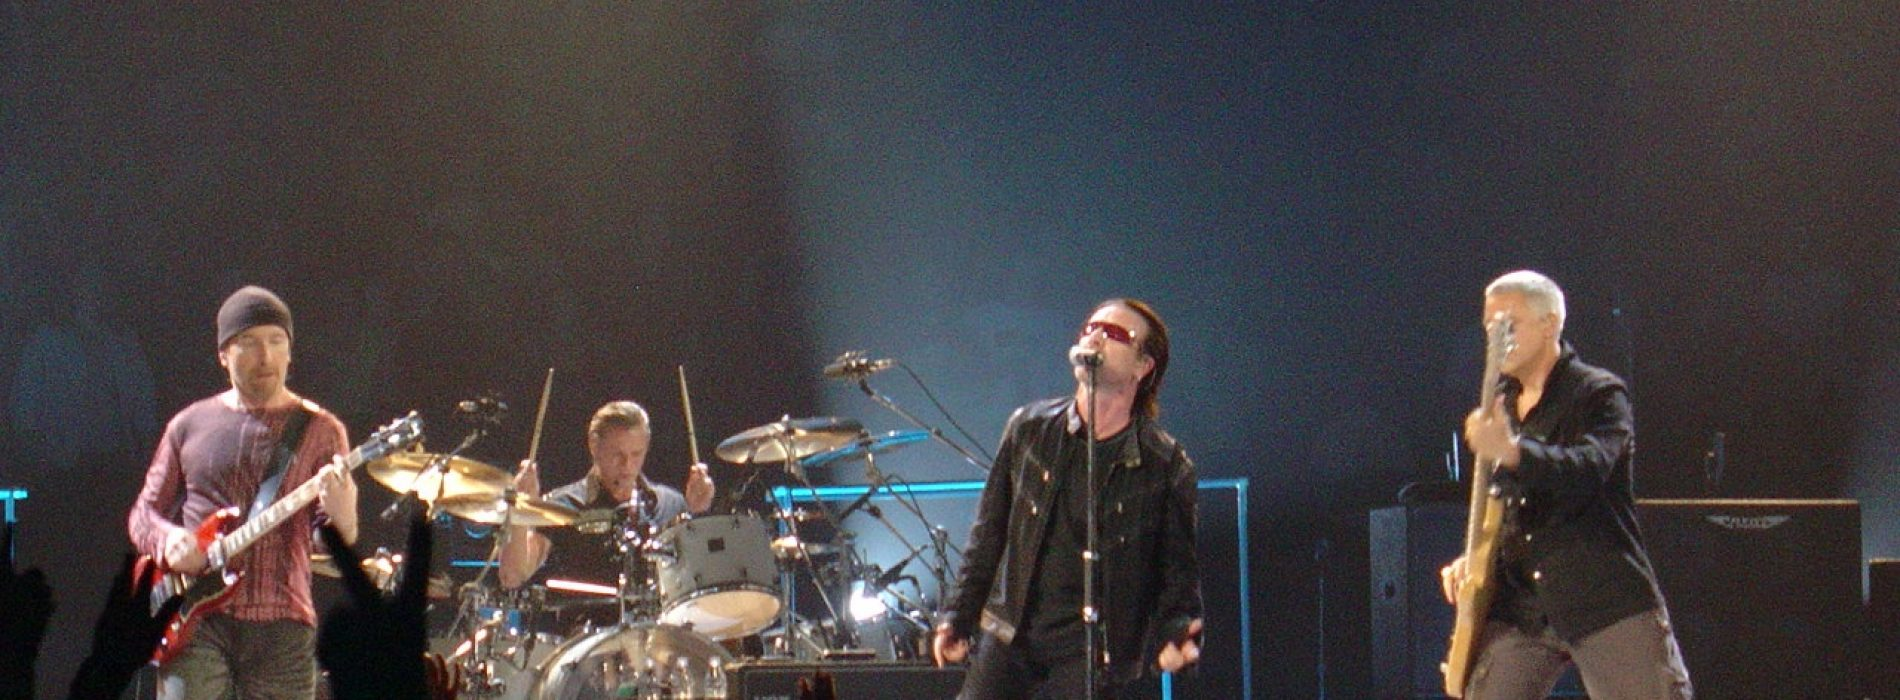 U2 Tour Has Now Sold More Than 2.4 Million Tickets